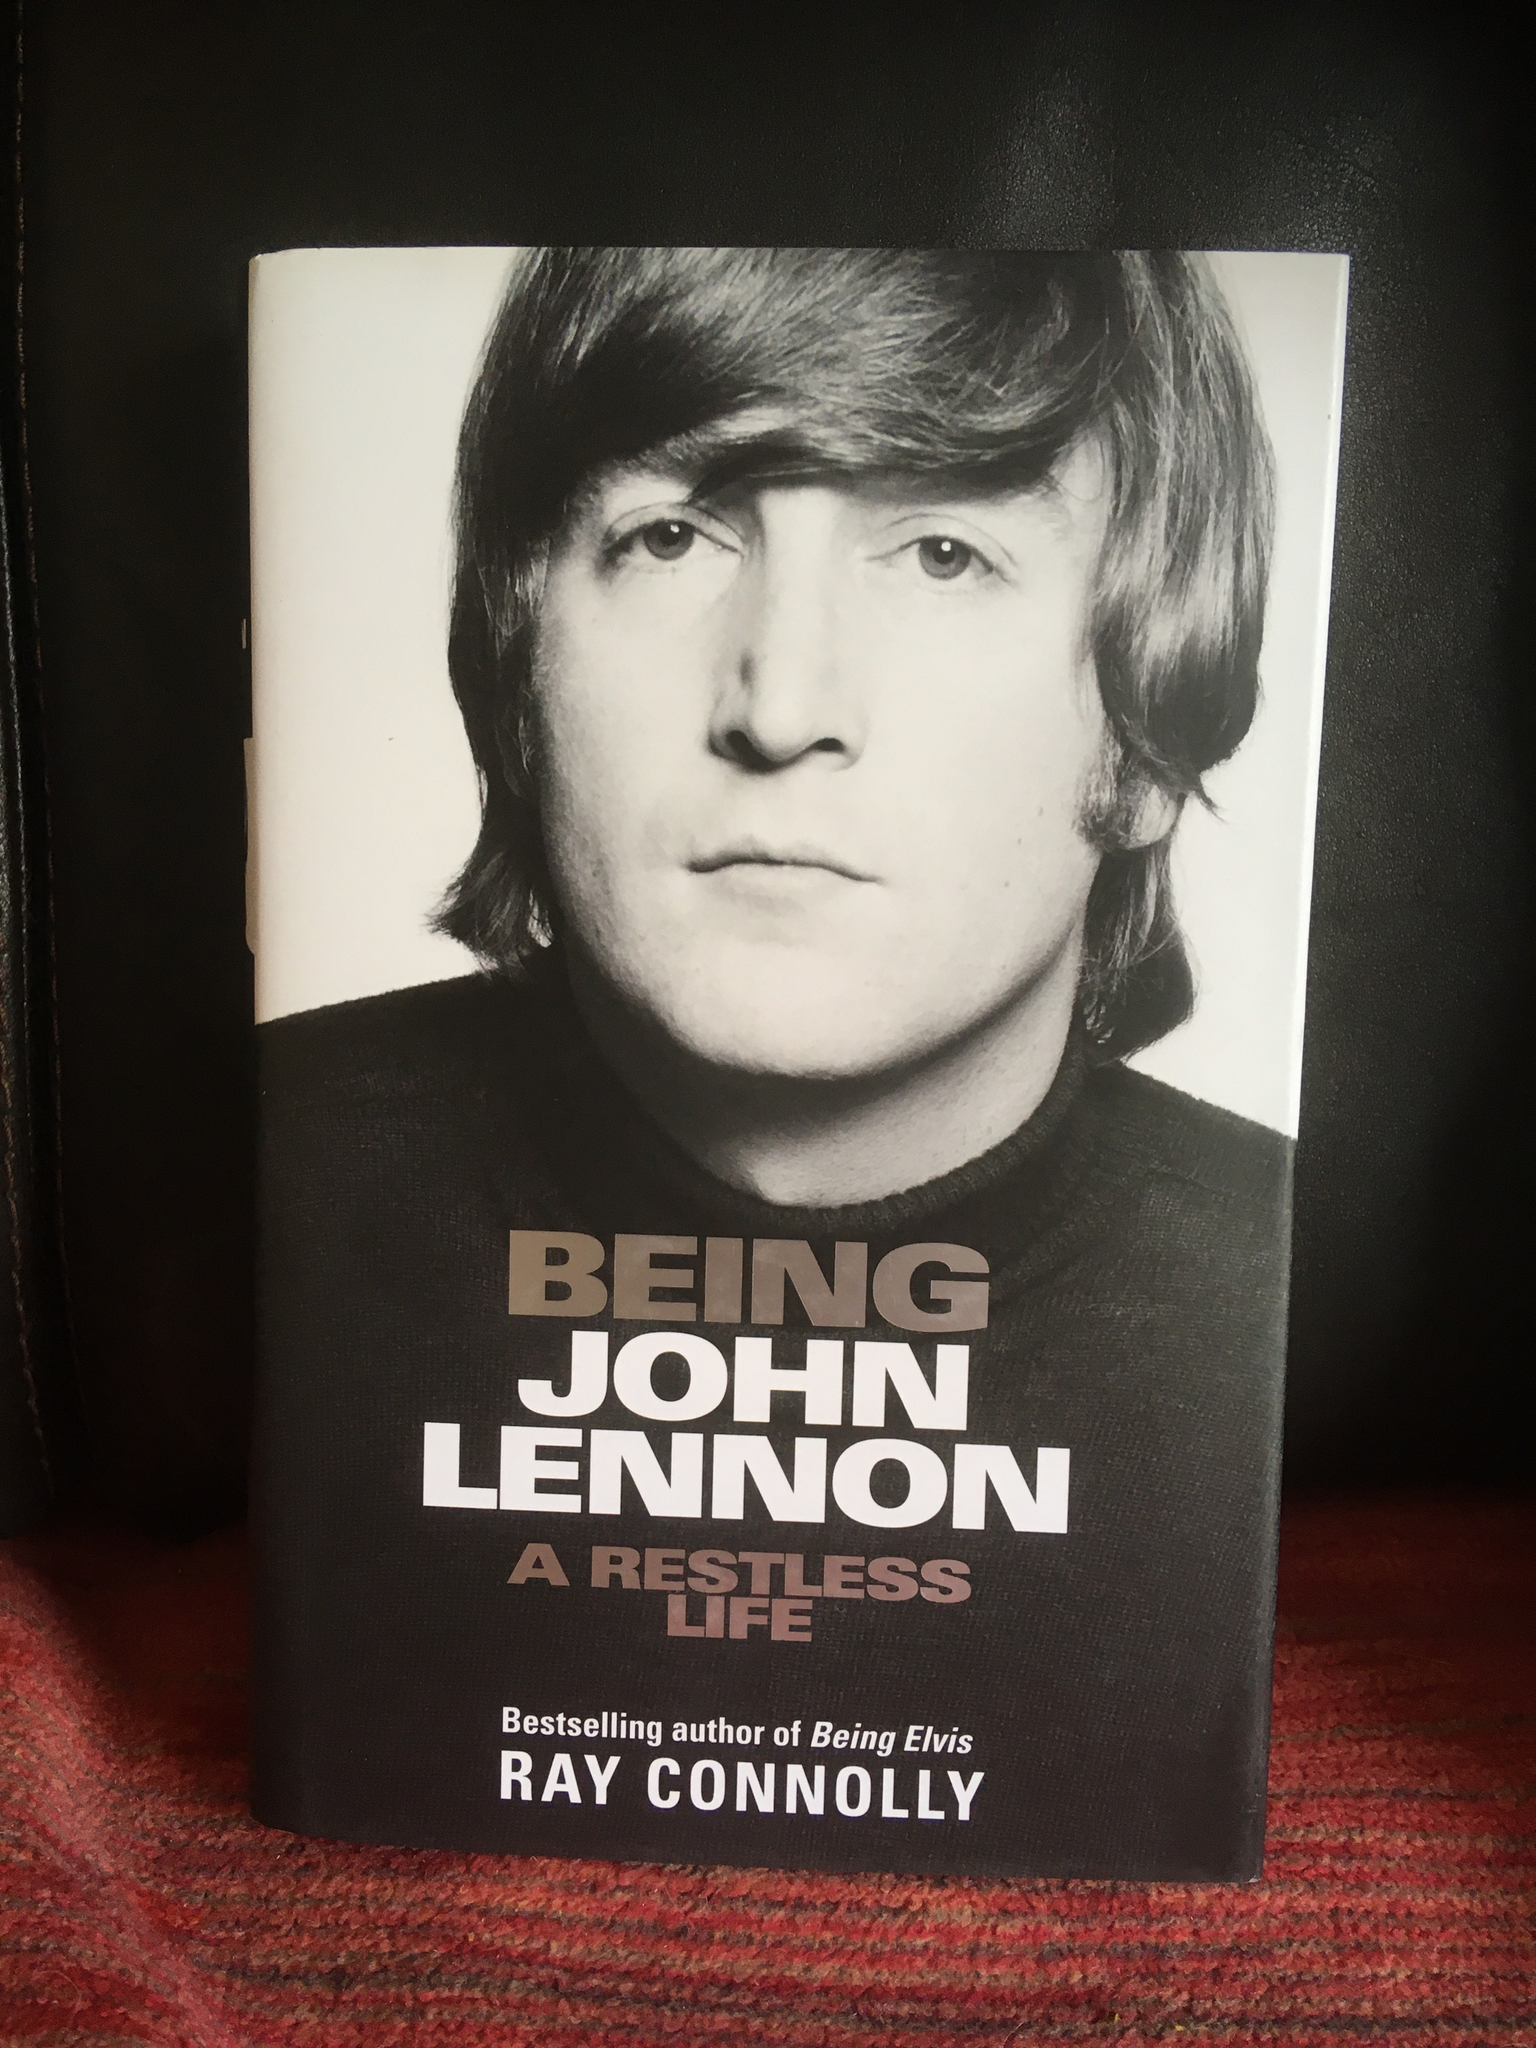 Being John Lennon Hardcover - Ray Connolly **SIGNED BY AUTHOR**